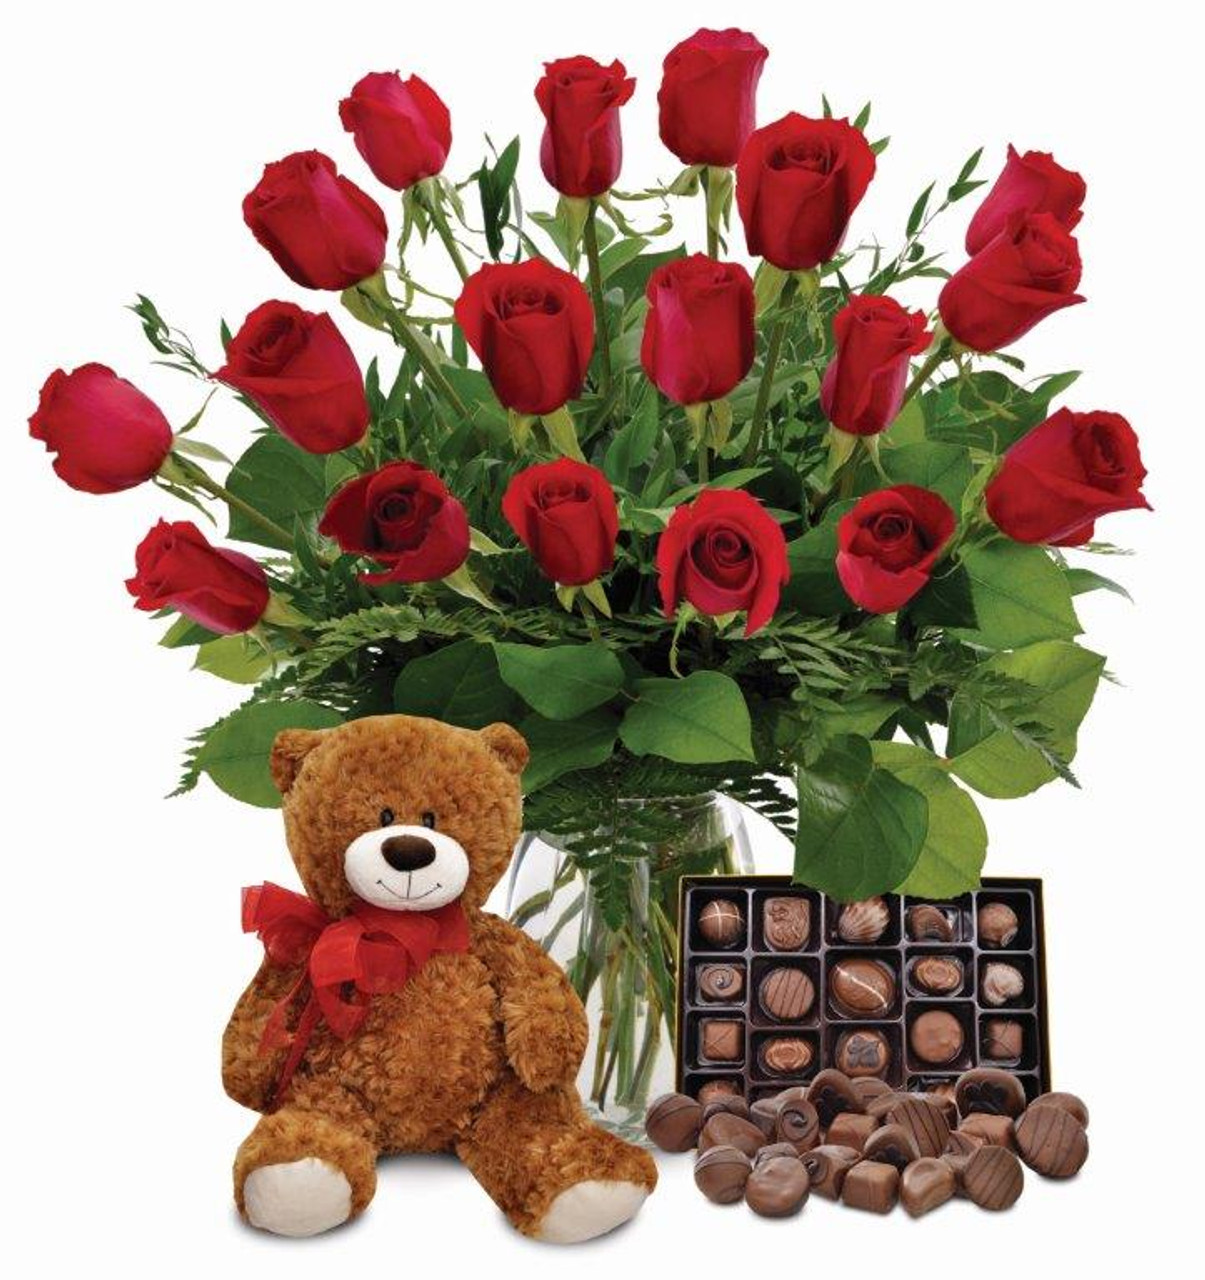 Teddy bear with pink roses - photo#39